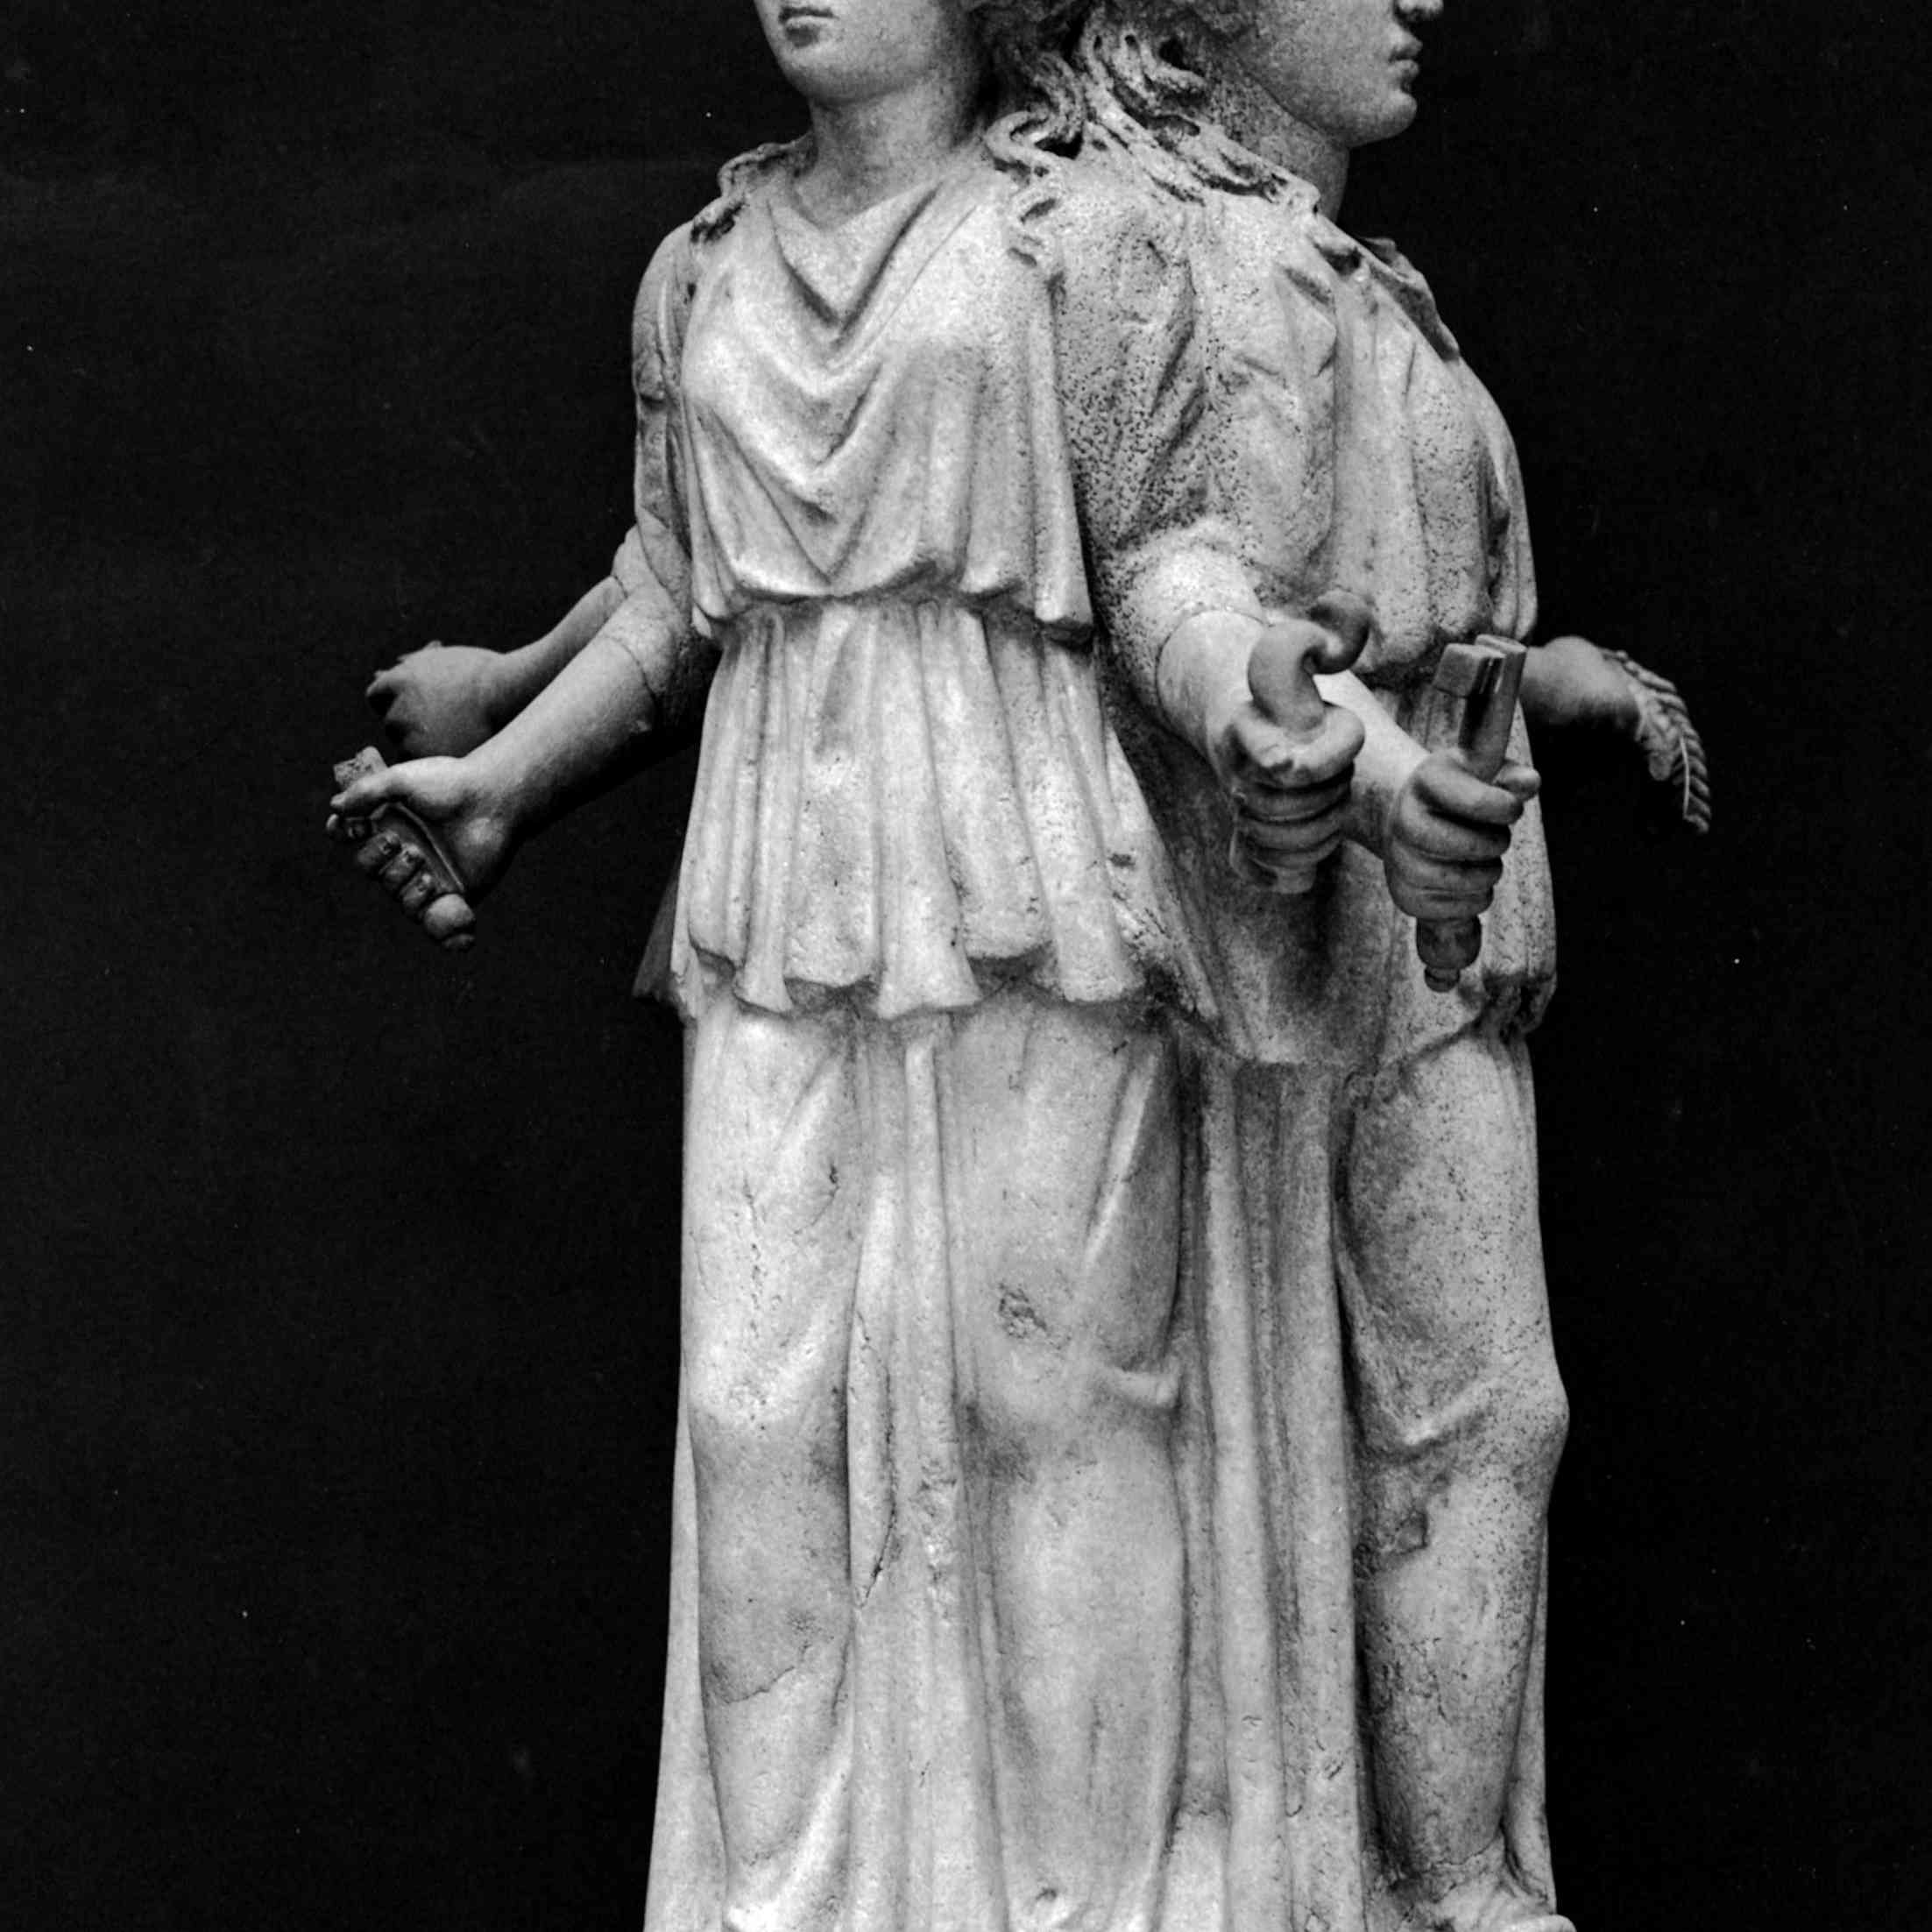 Sculpture of Hecate, an ancient fertility goddess later associated with Hades and witches.